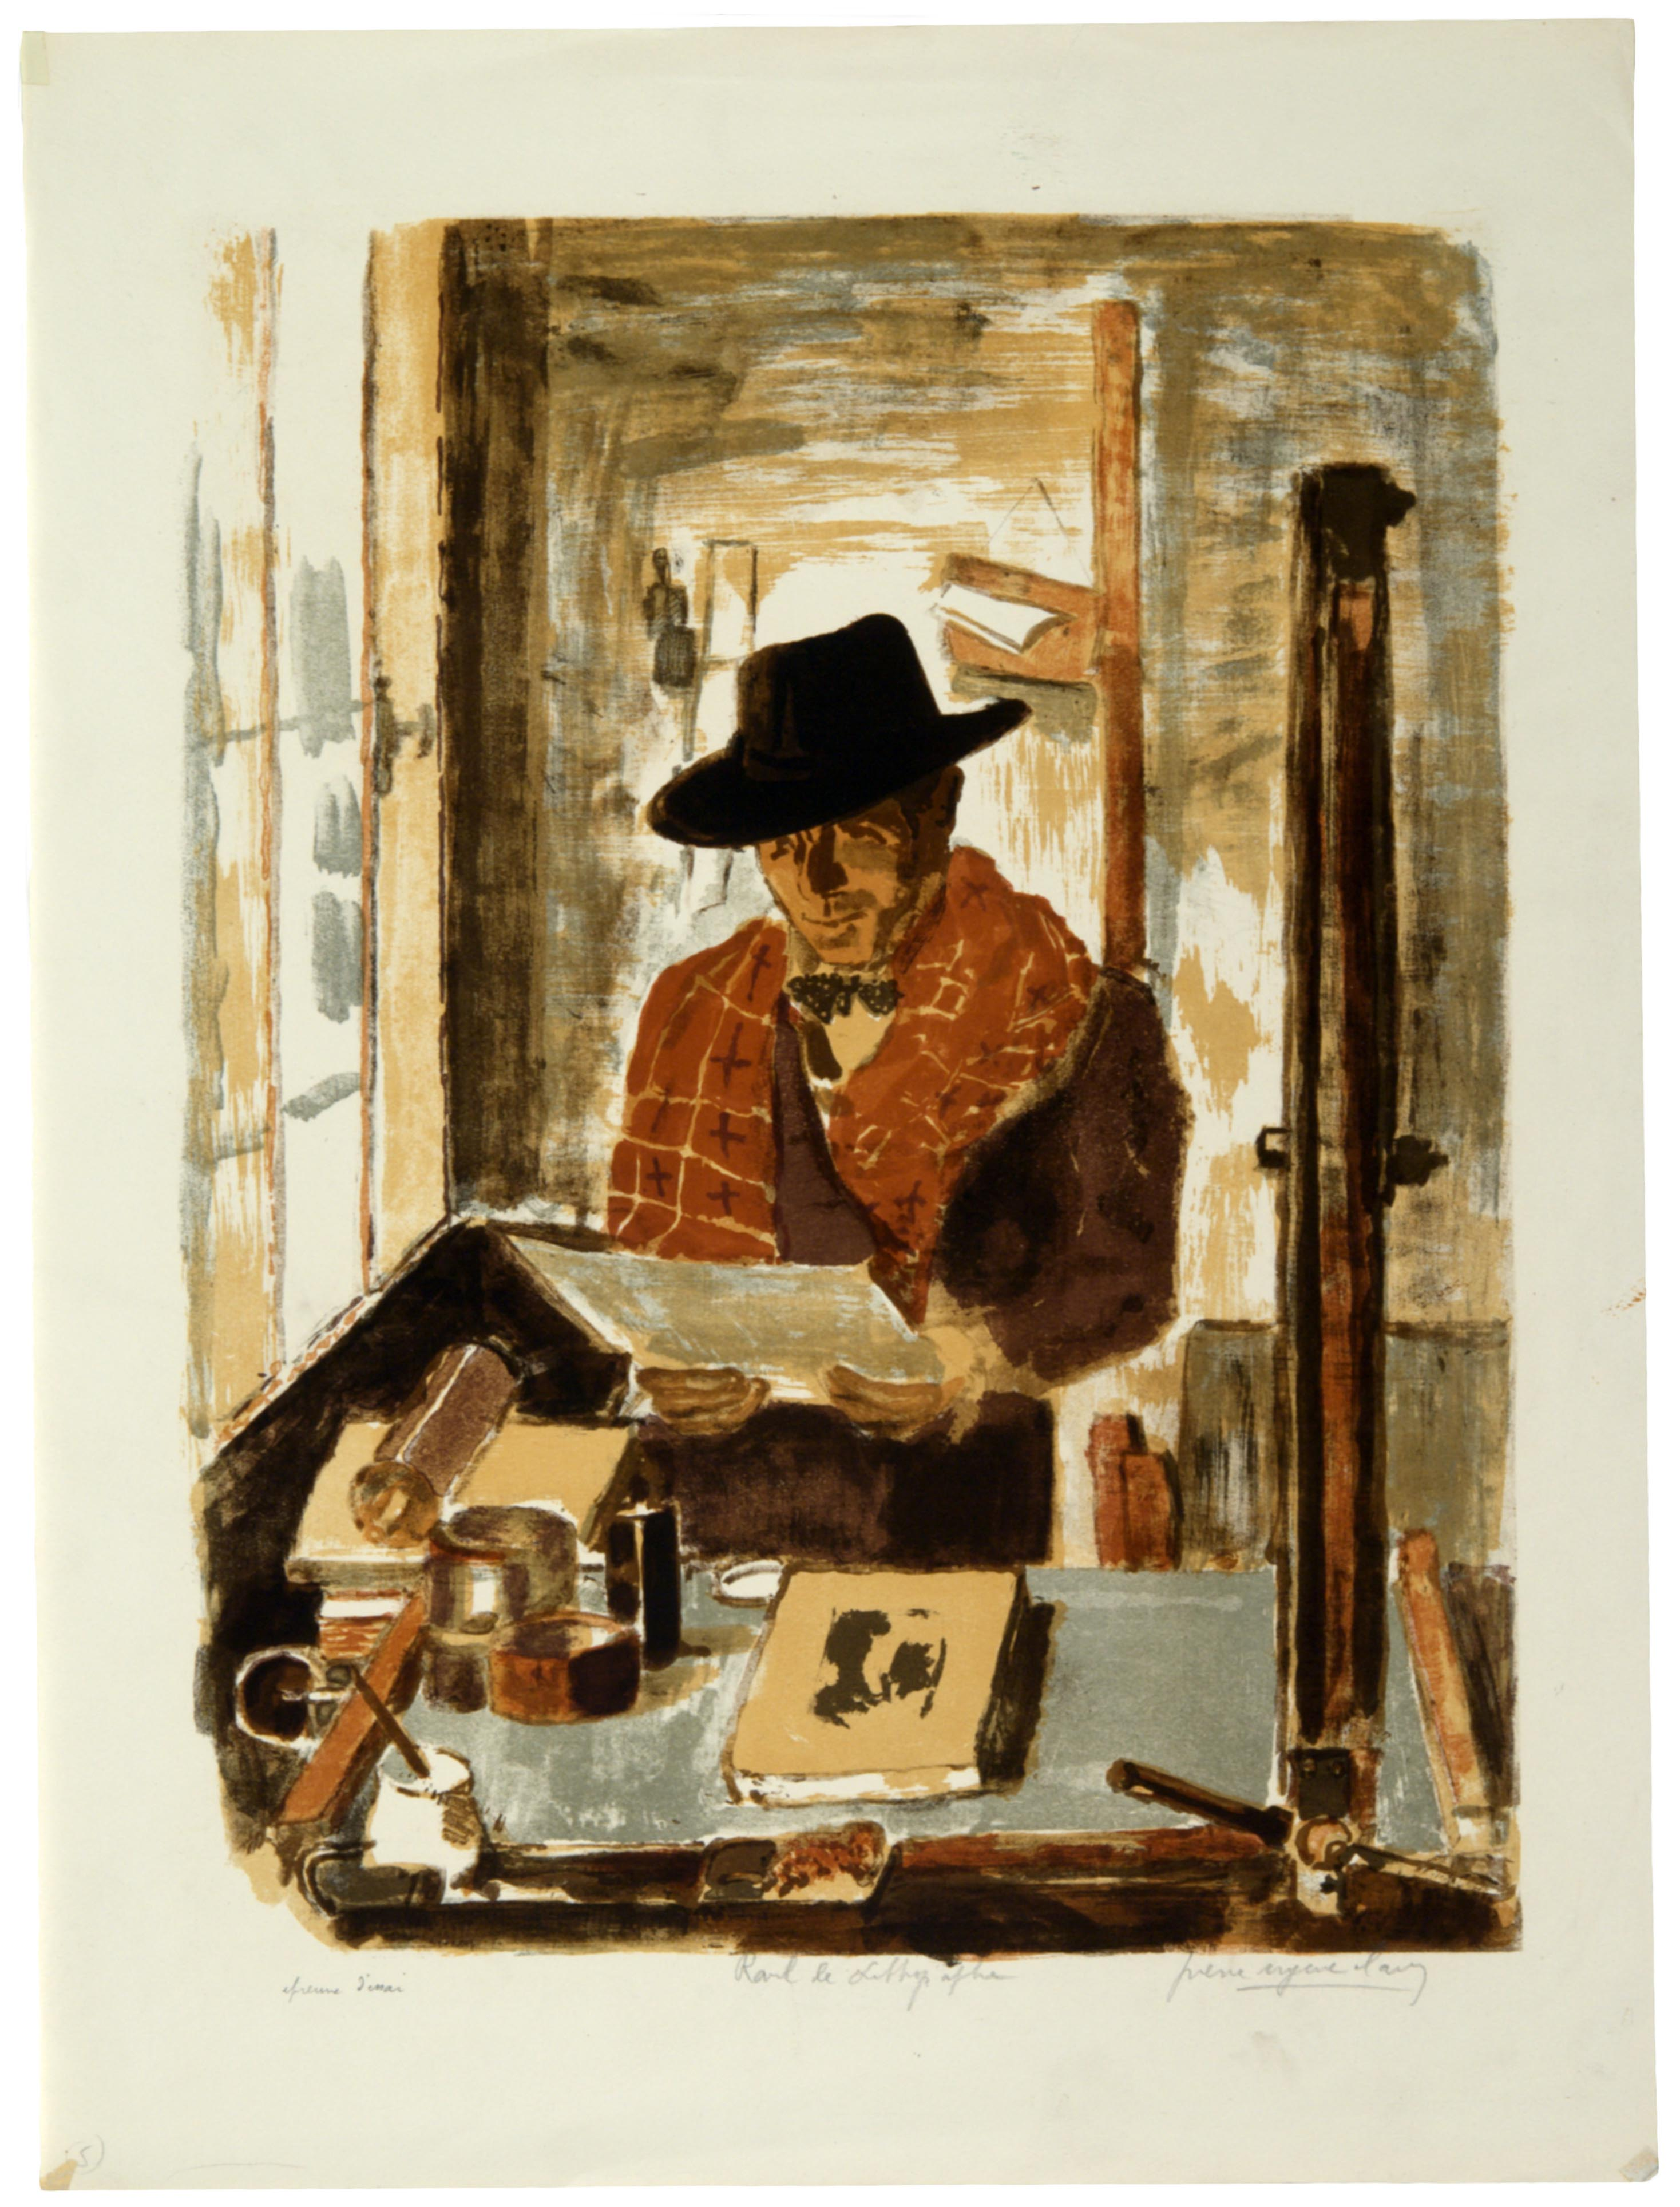 Pierre Eugene Clairin, Ravel the Lithographer, 1949